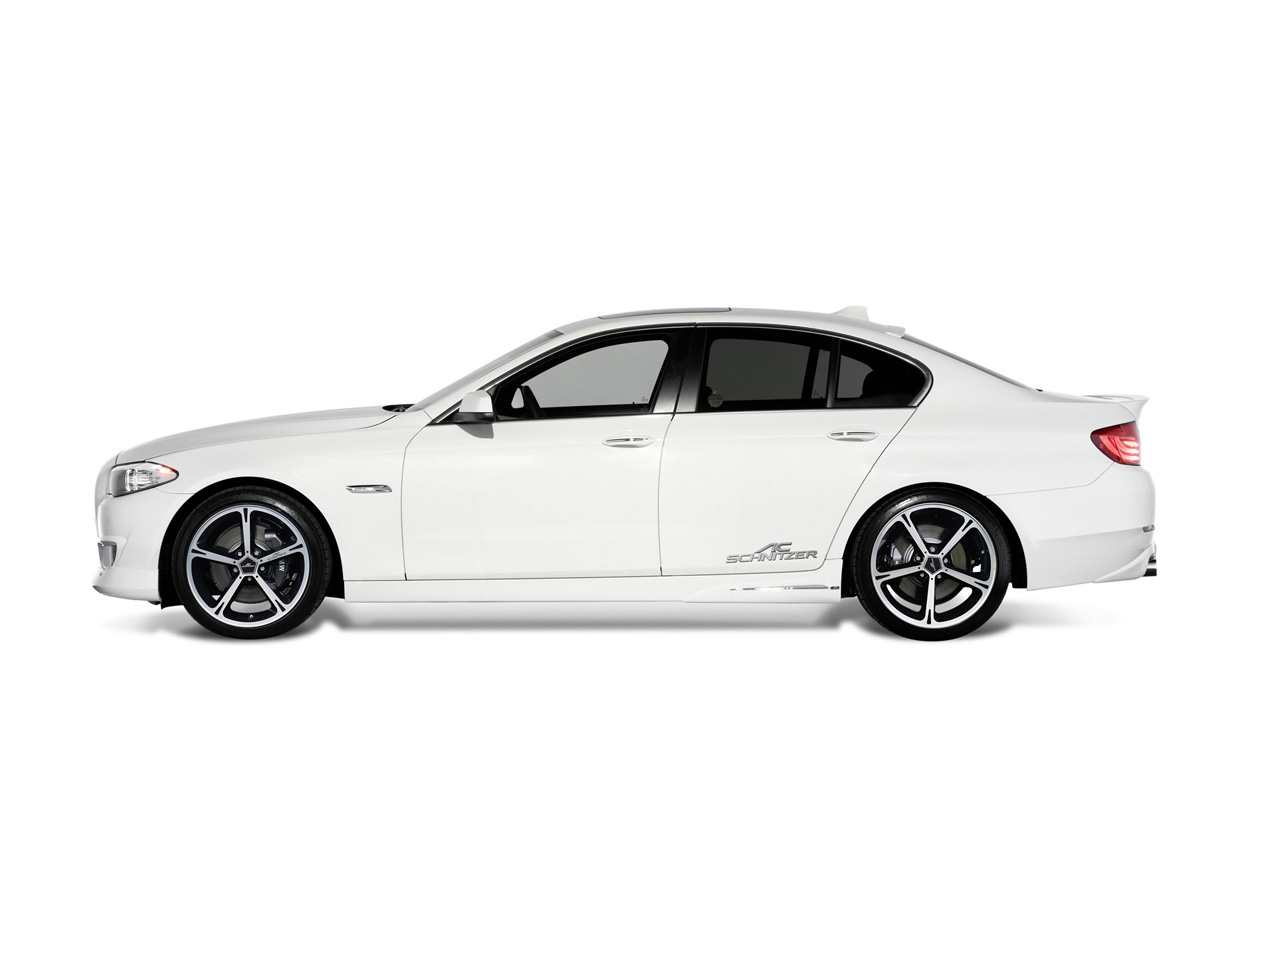 White BMW Car Pictures & Images – Super Cool White Beamer